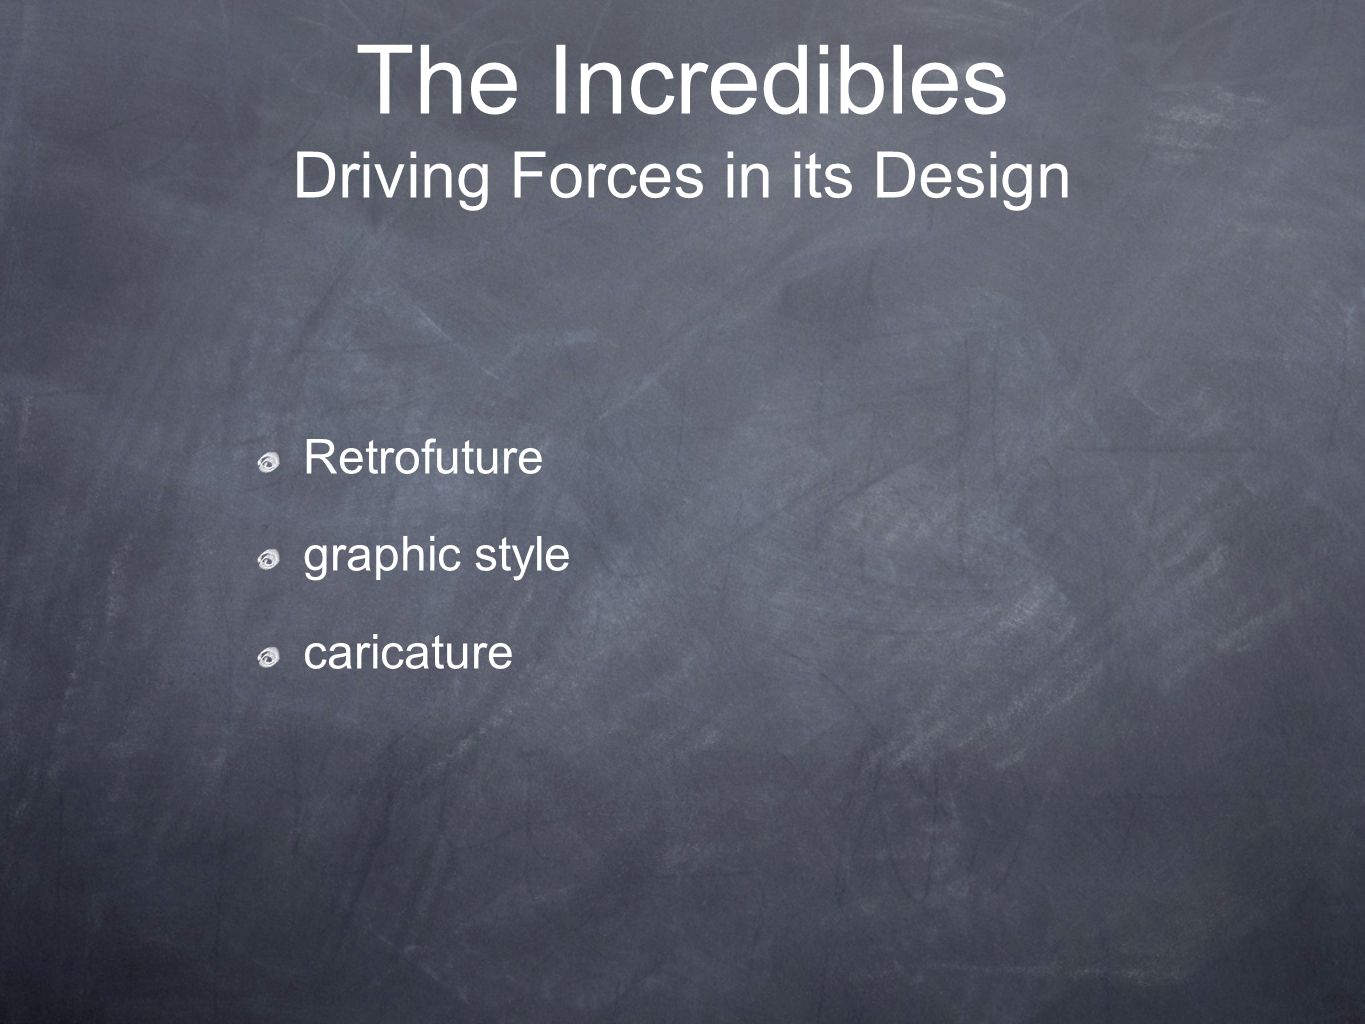 Driving Forces in its Design